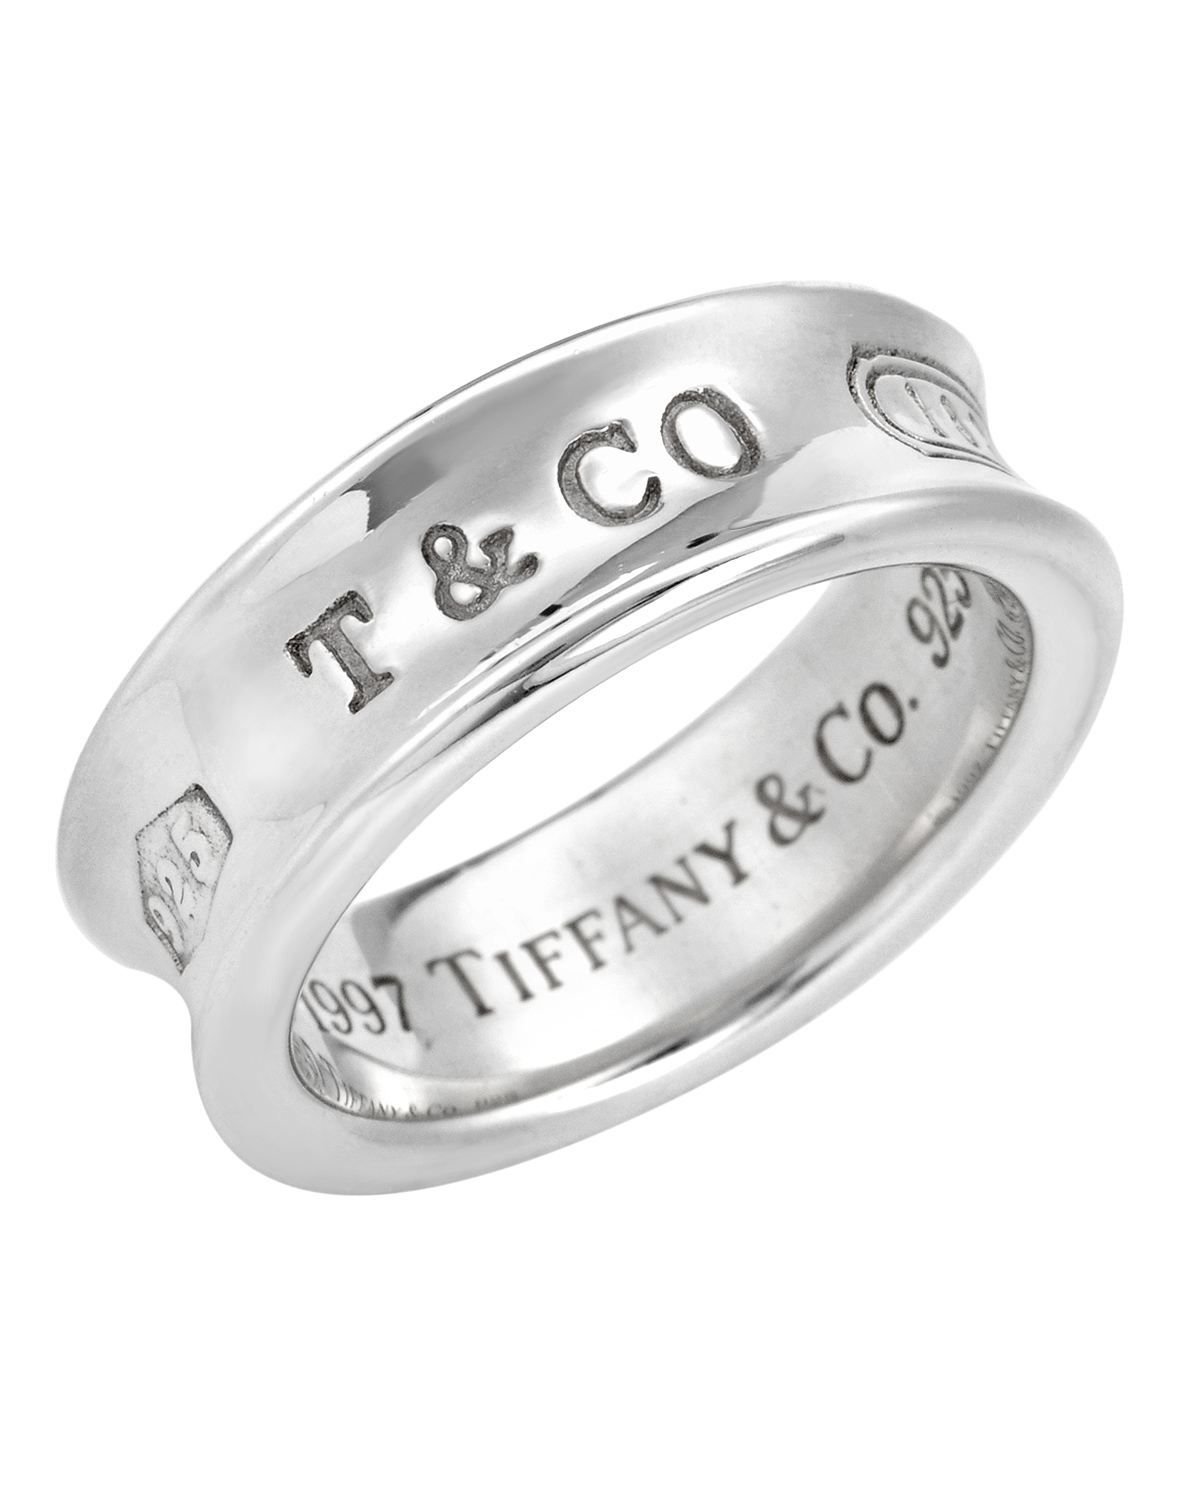 Product Name Tiffany Co Sterling Silver Ring Band 7 10 Condition At Modnique Com 149 Sterling Silver Rings Bands Tiffany Jewelry Sterling Silver Rings